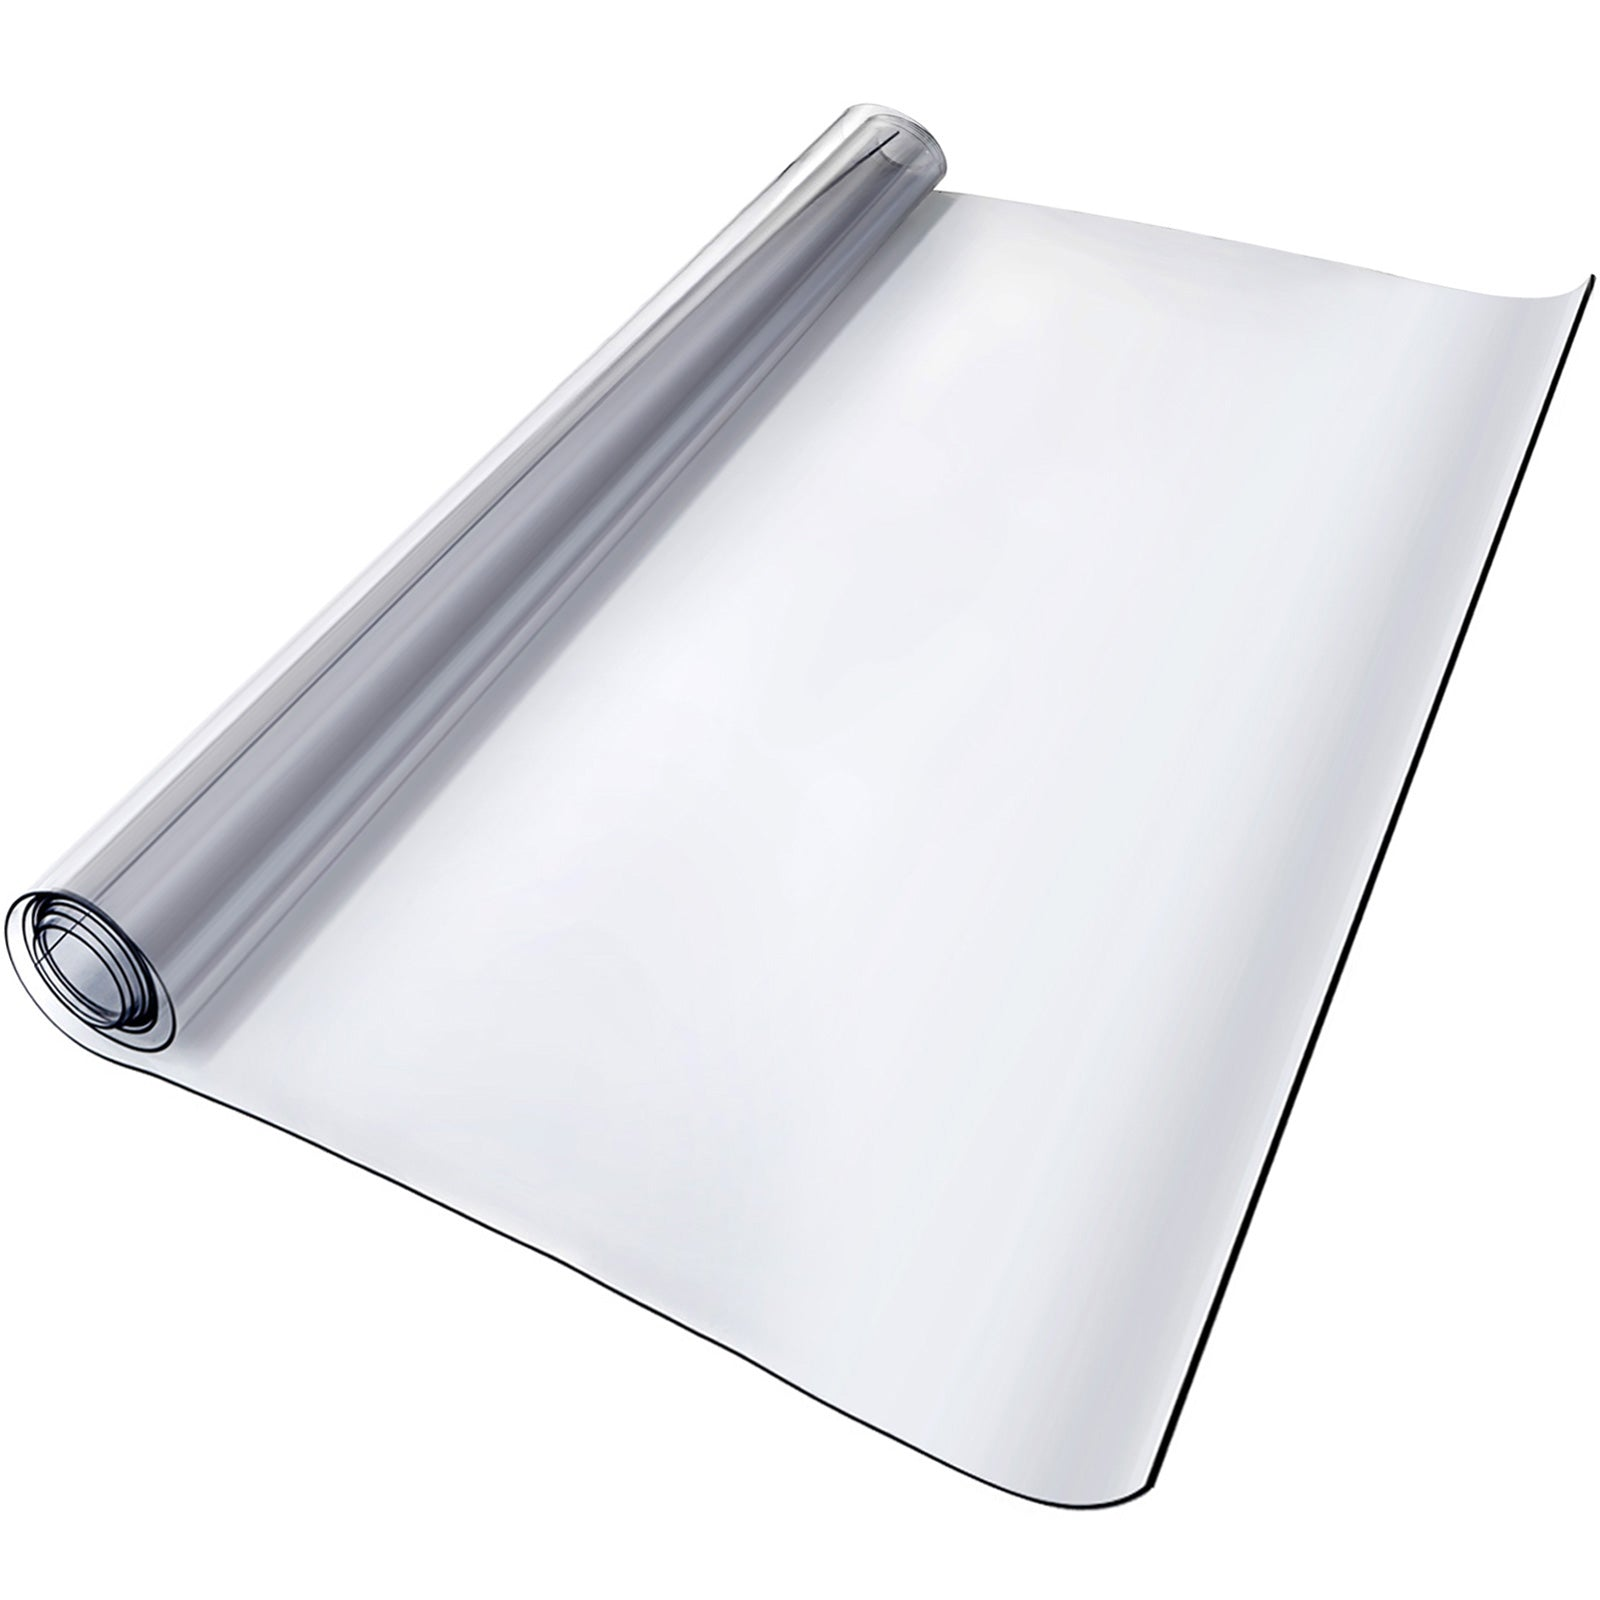 "Pvc Tablecloth Protector Table Cover 42"" X 96"" Writing Desk Desktop Easy Clean"